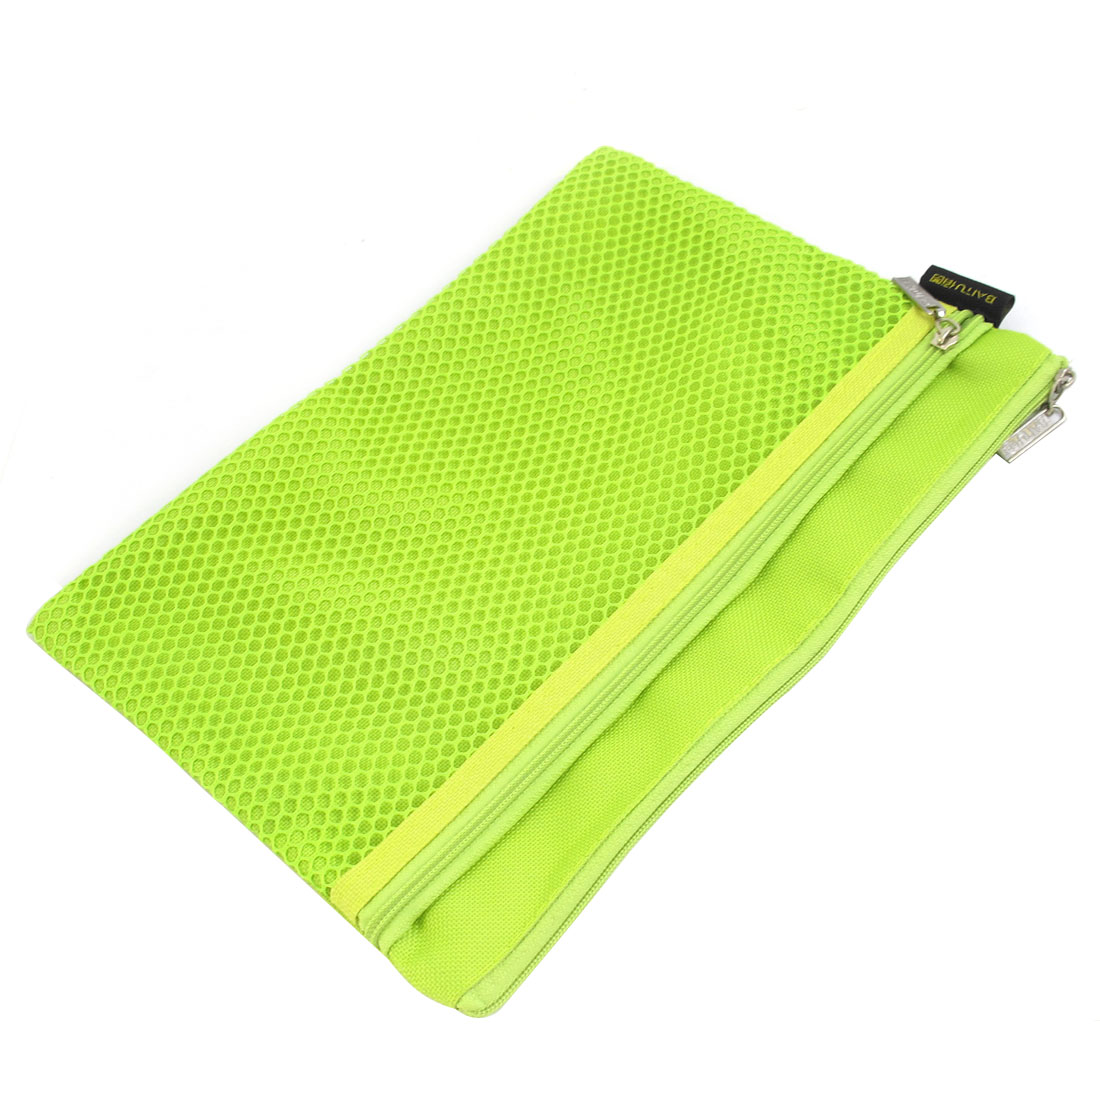 Two Compartments Canvas Zipper Closure A5 File Bag Document Holder Green